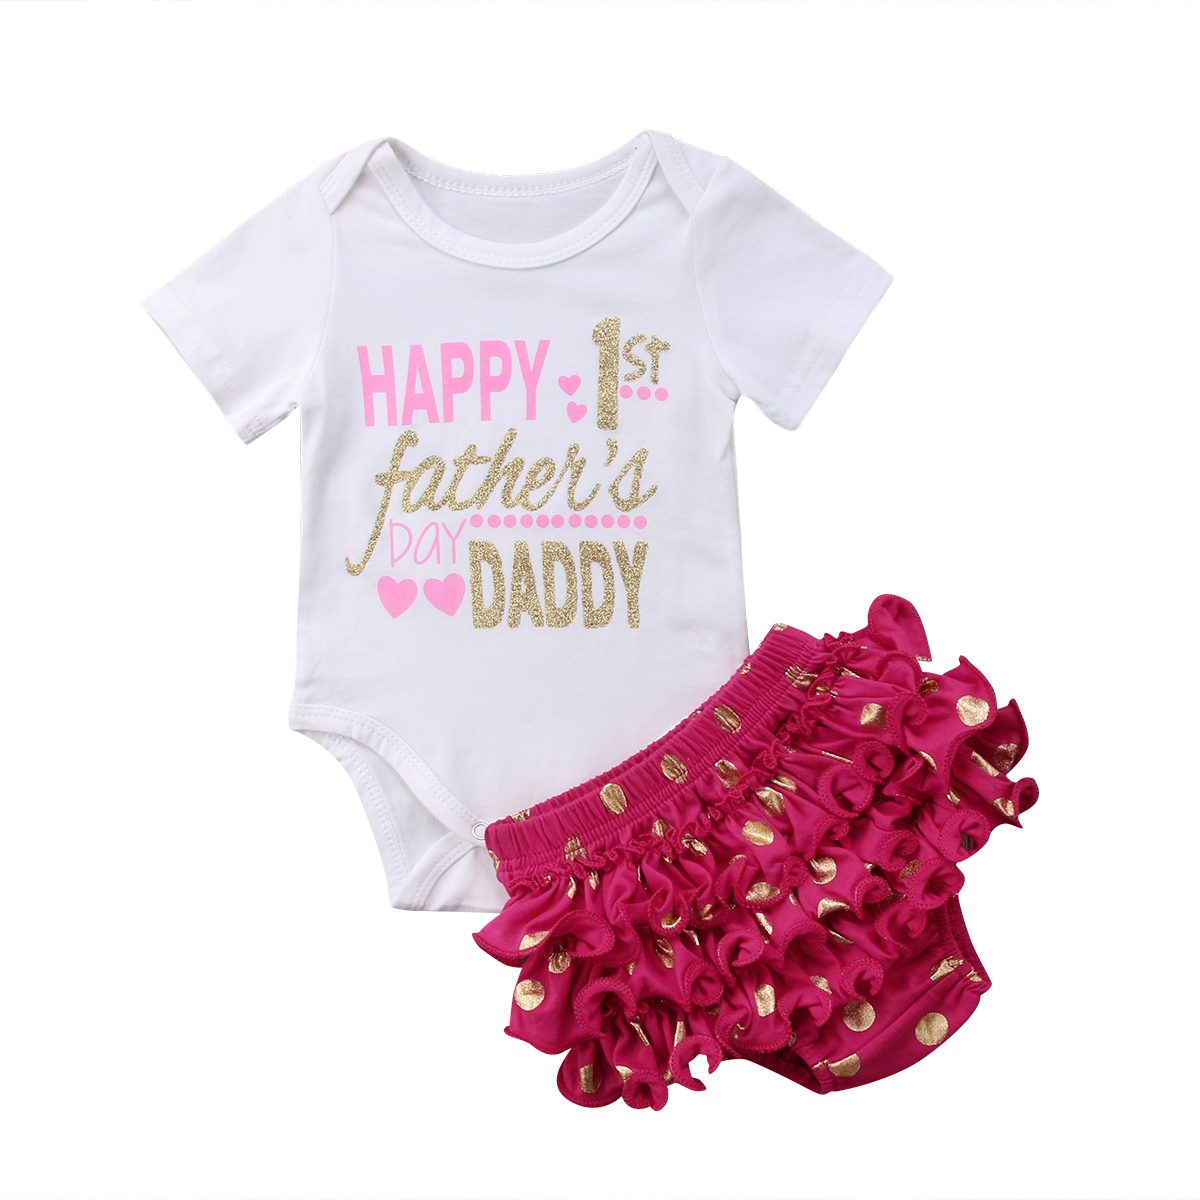 Happy 1st Fathers Day Newborn Infant Baby Girl Short Sleeve Letter Romper Tops+polka Dot Ruffles Baby Bloomers Shorts 2pcs Set Mother & Kids Girls' Baby Clothing